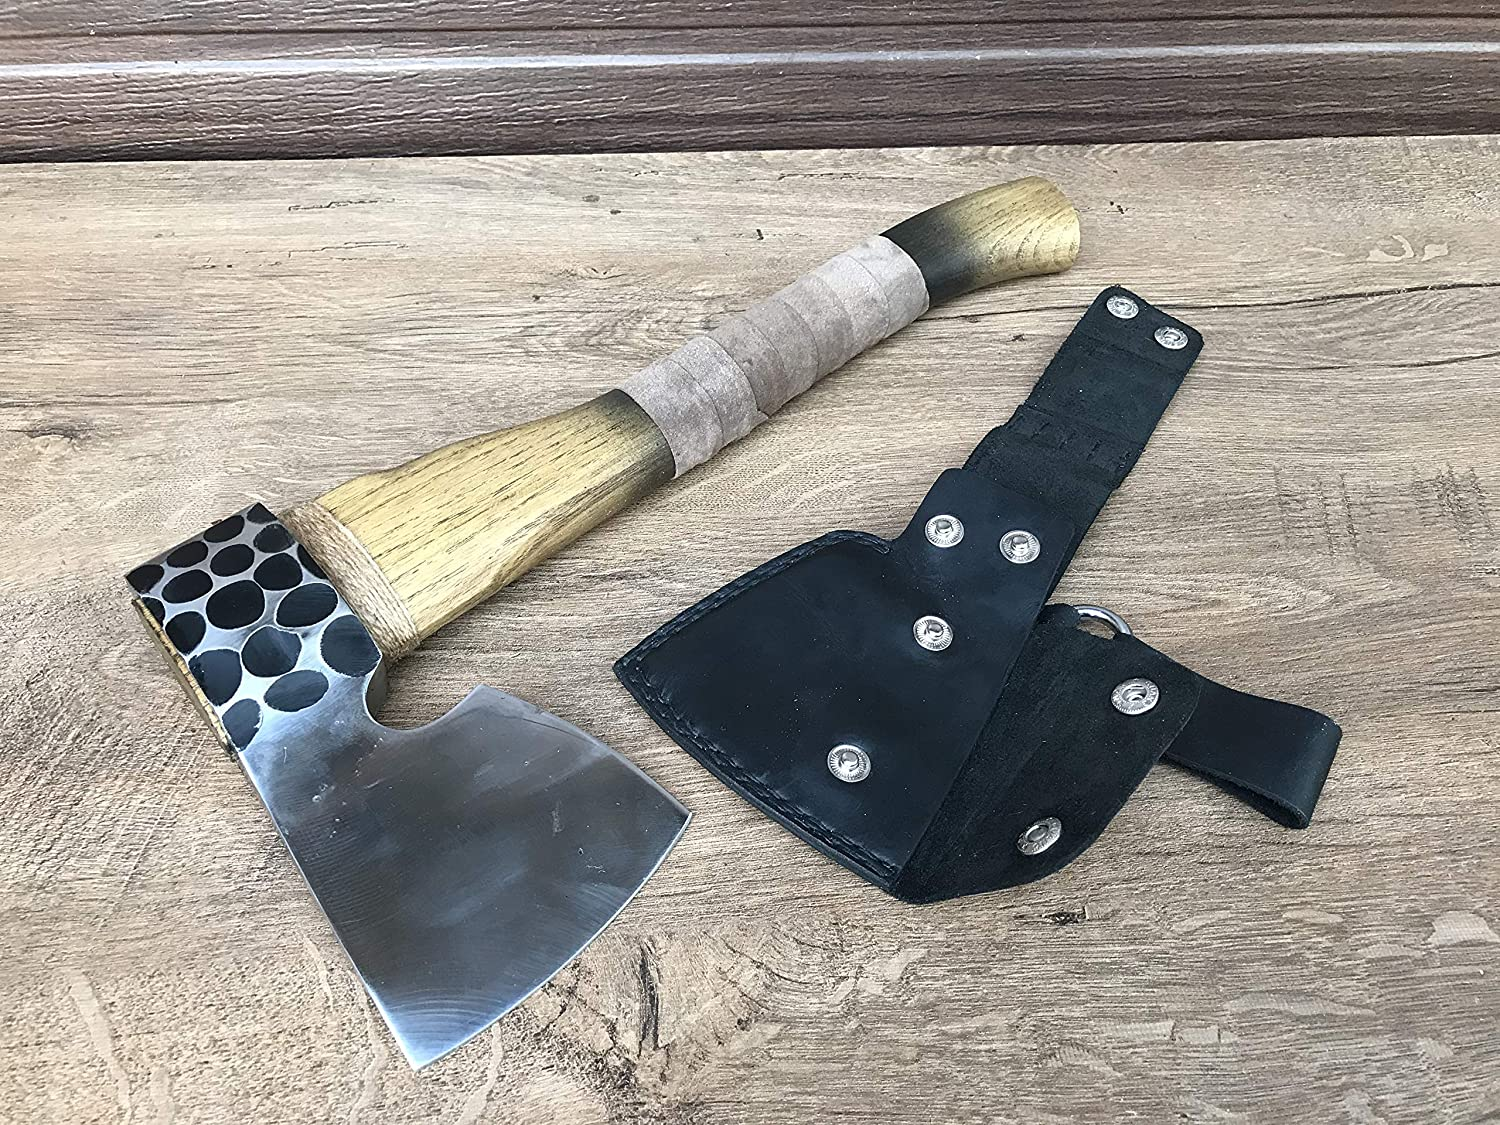 Norse axe viking camp hatchet medieval axe Viking axe 6th anniversary gift viking weapon ax gift for men leather sheath tomahawk